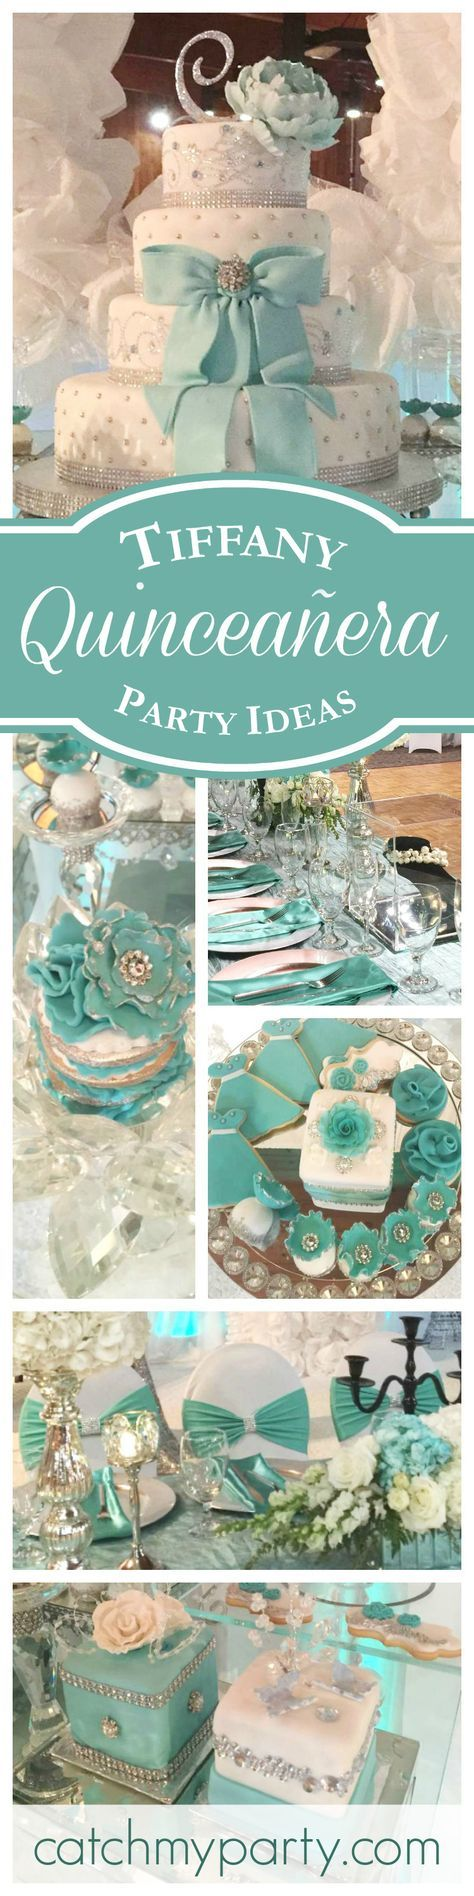 A magnificent Tiffany themed Quinceañera birthday party! The decorations and dessert table are fabulous! See more party ideas at CatchMyParty.com